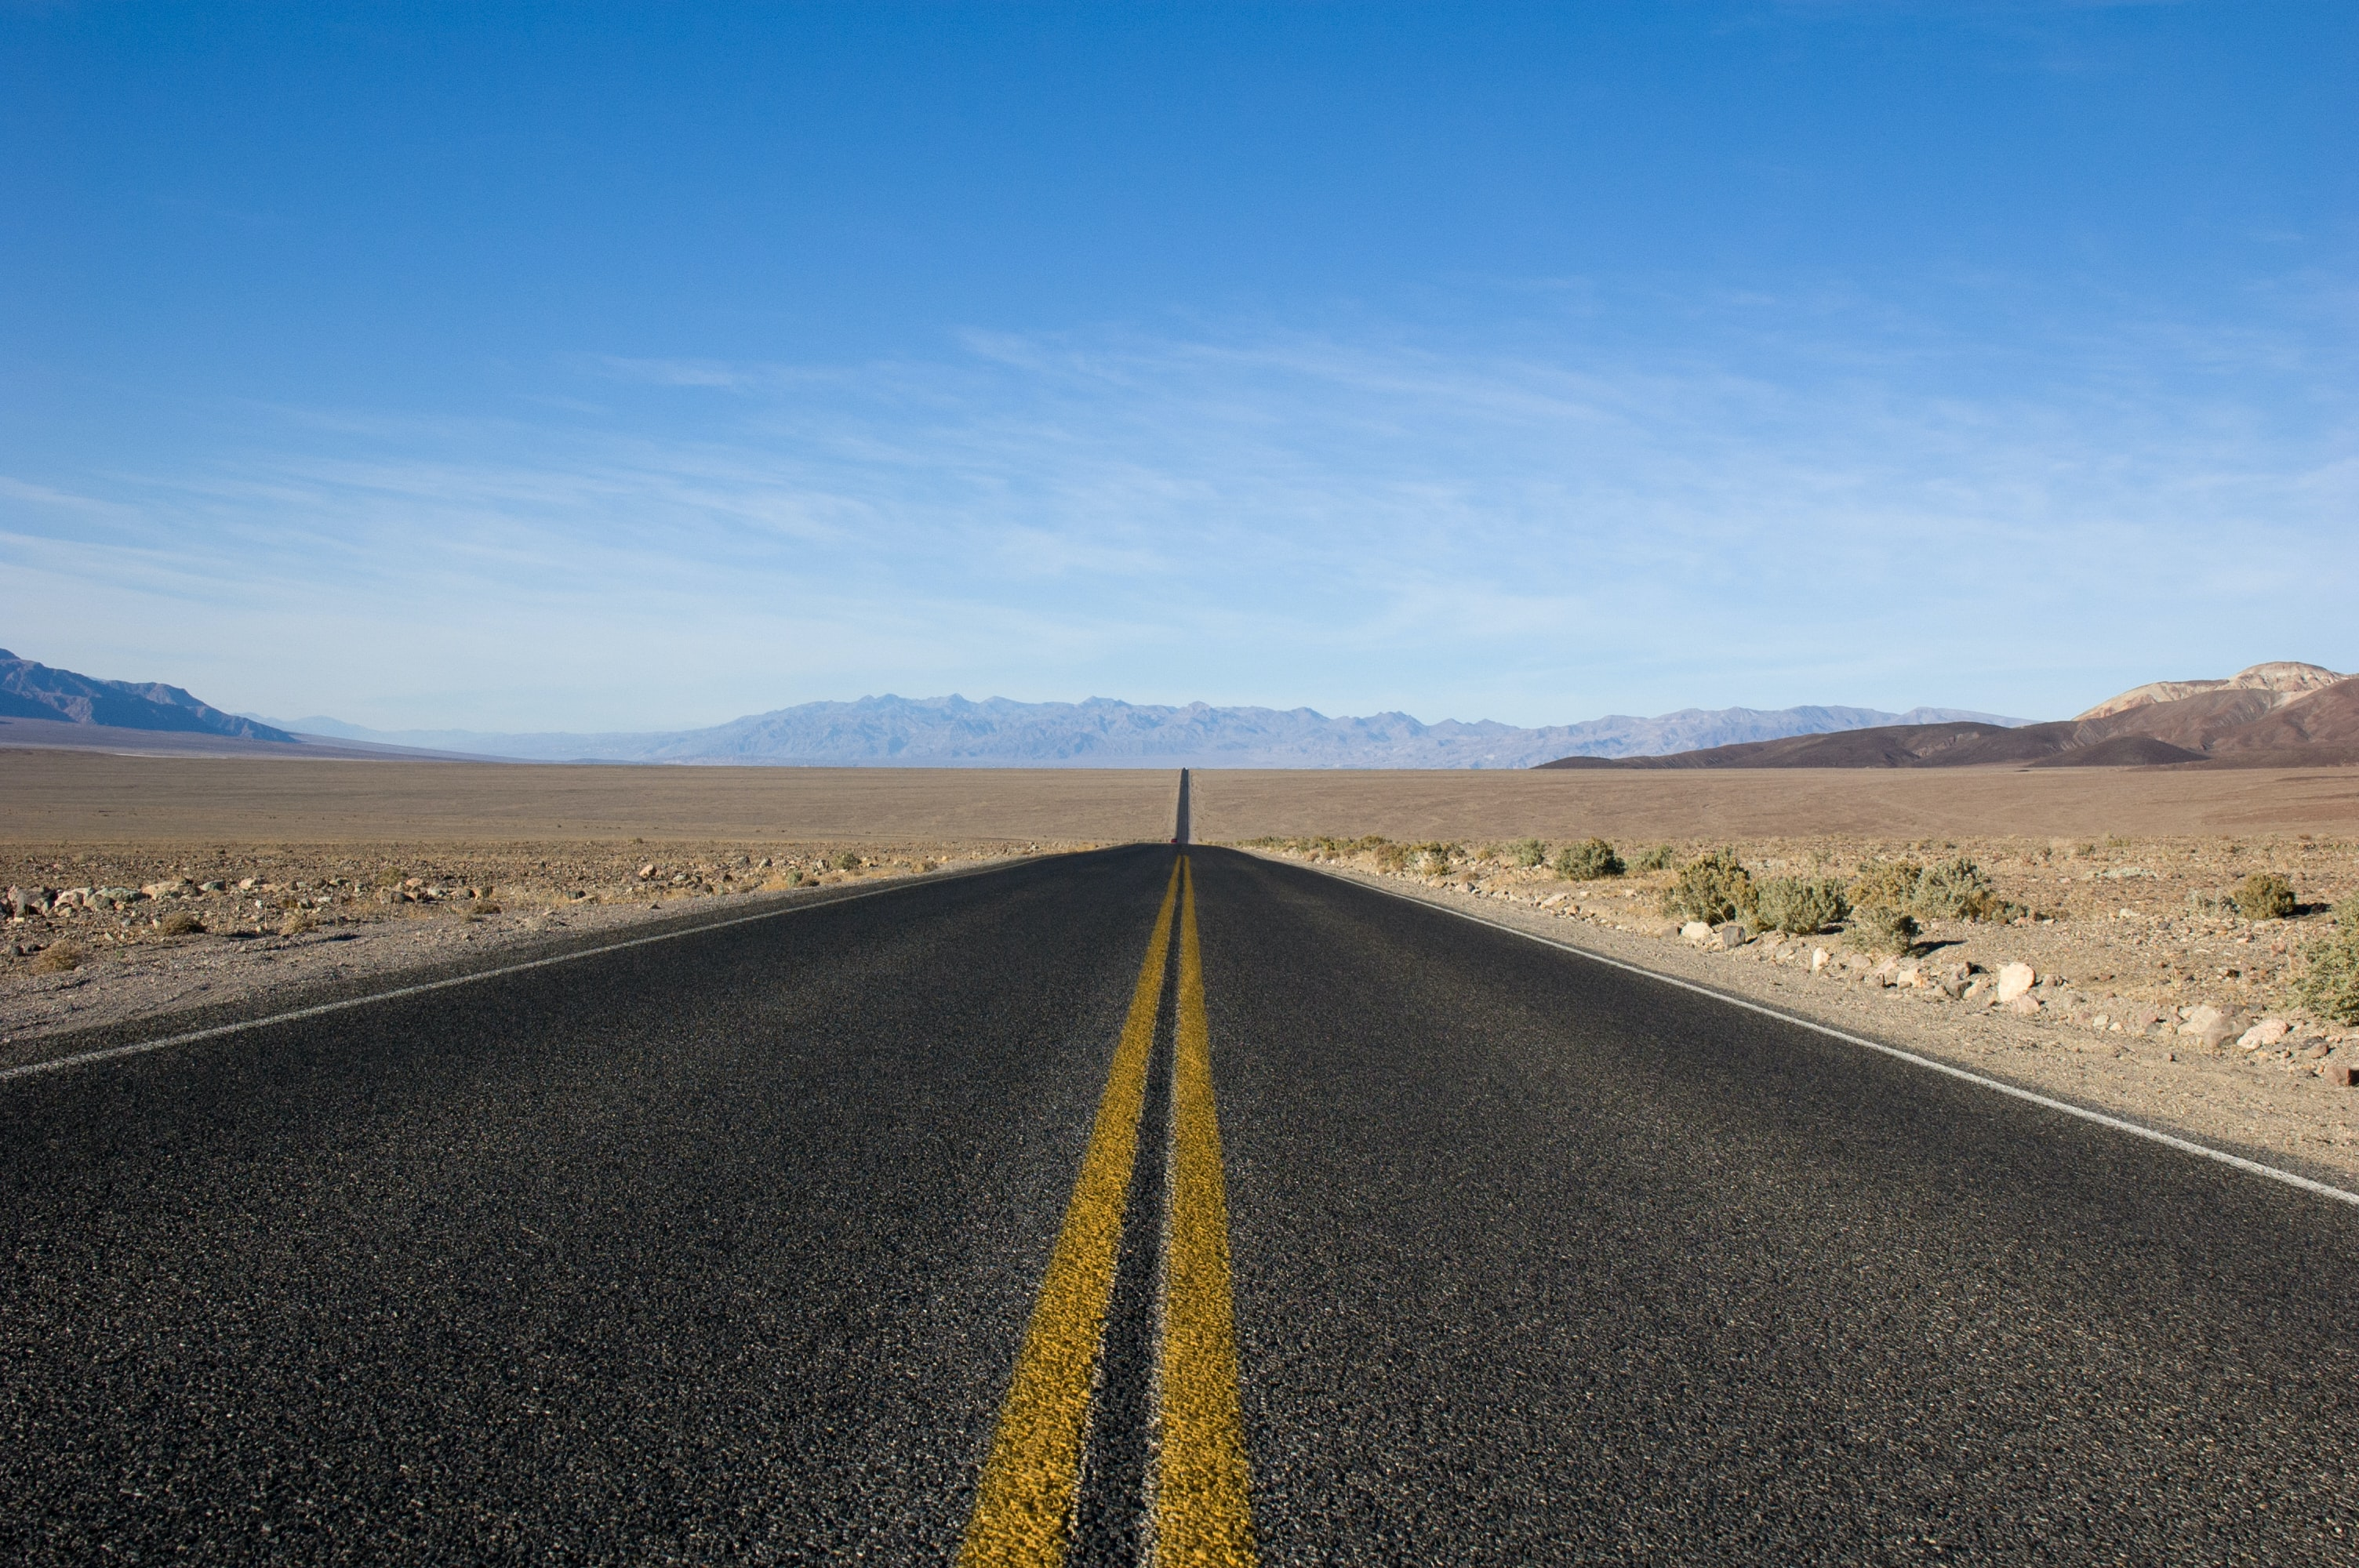 Open highway road through the desert of Death Valley National Park